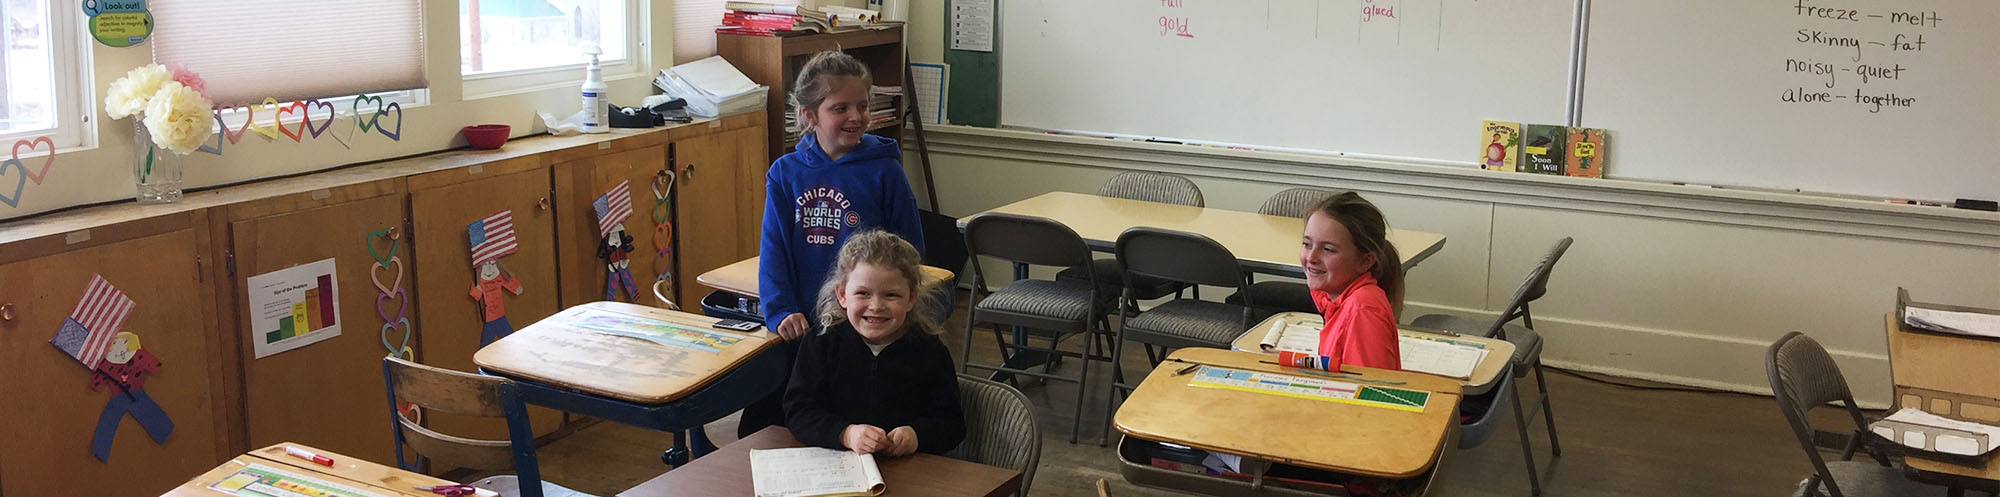 Three happy elementary school girls sitting in a classroom